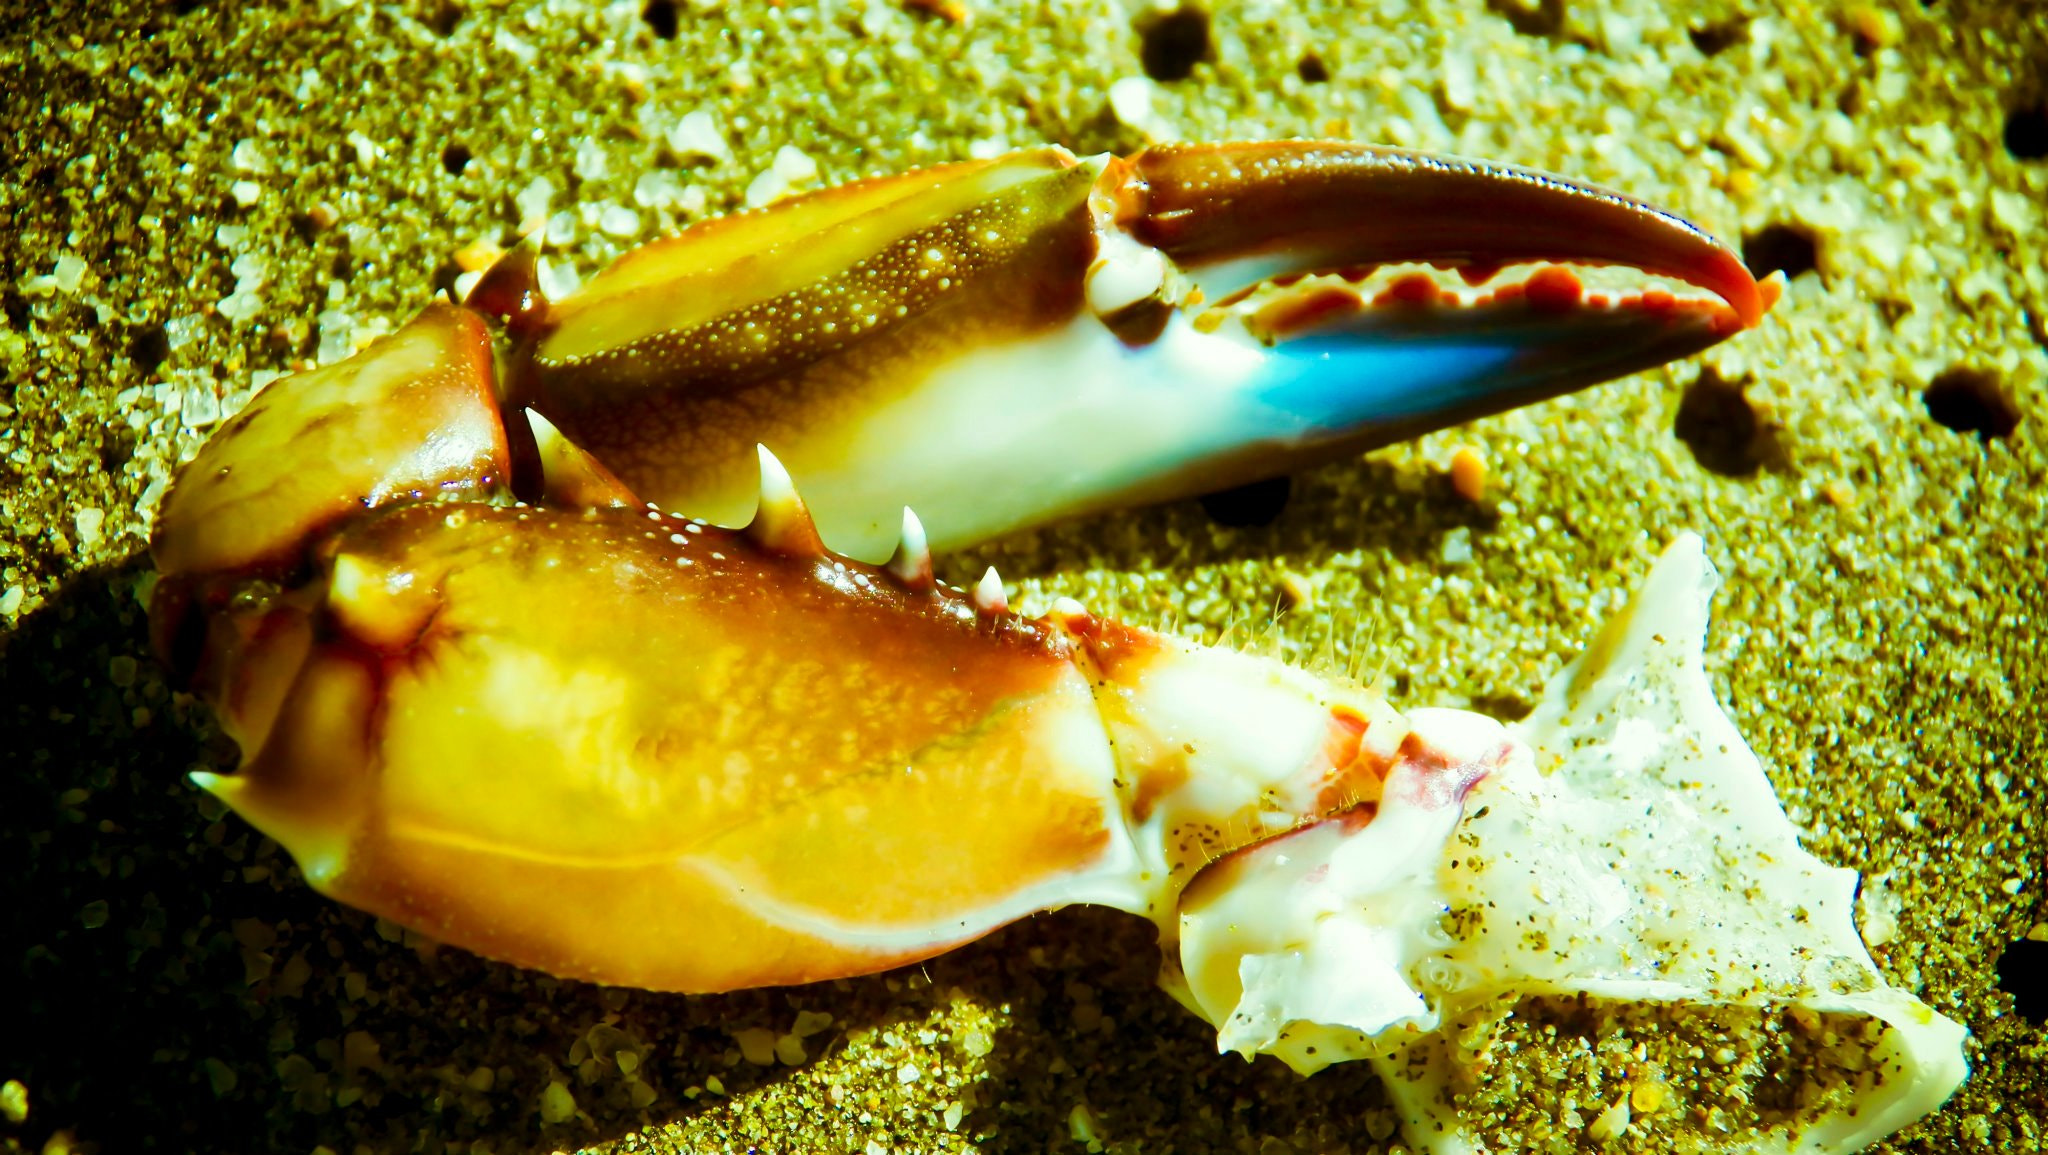 Photograph Claw by Horacio Macalpin on 500px